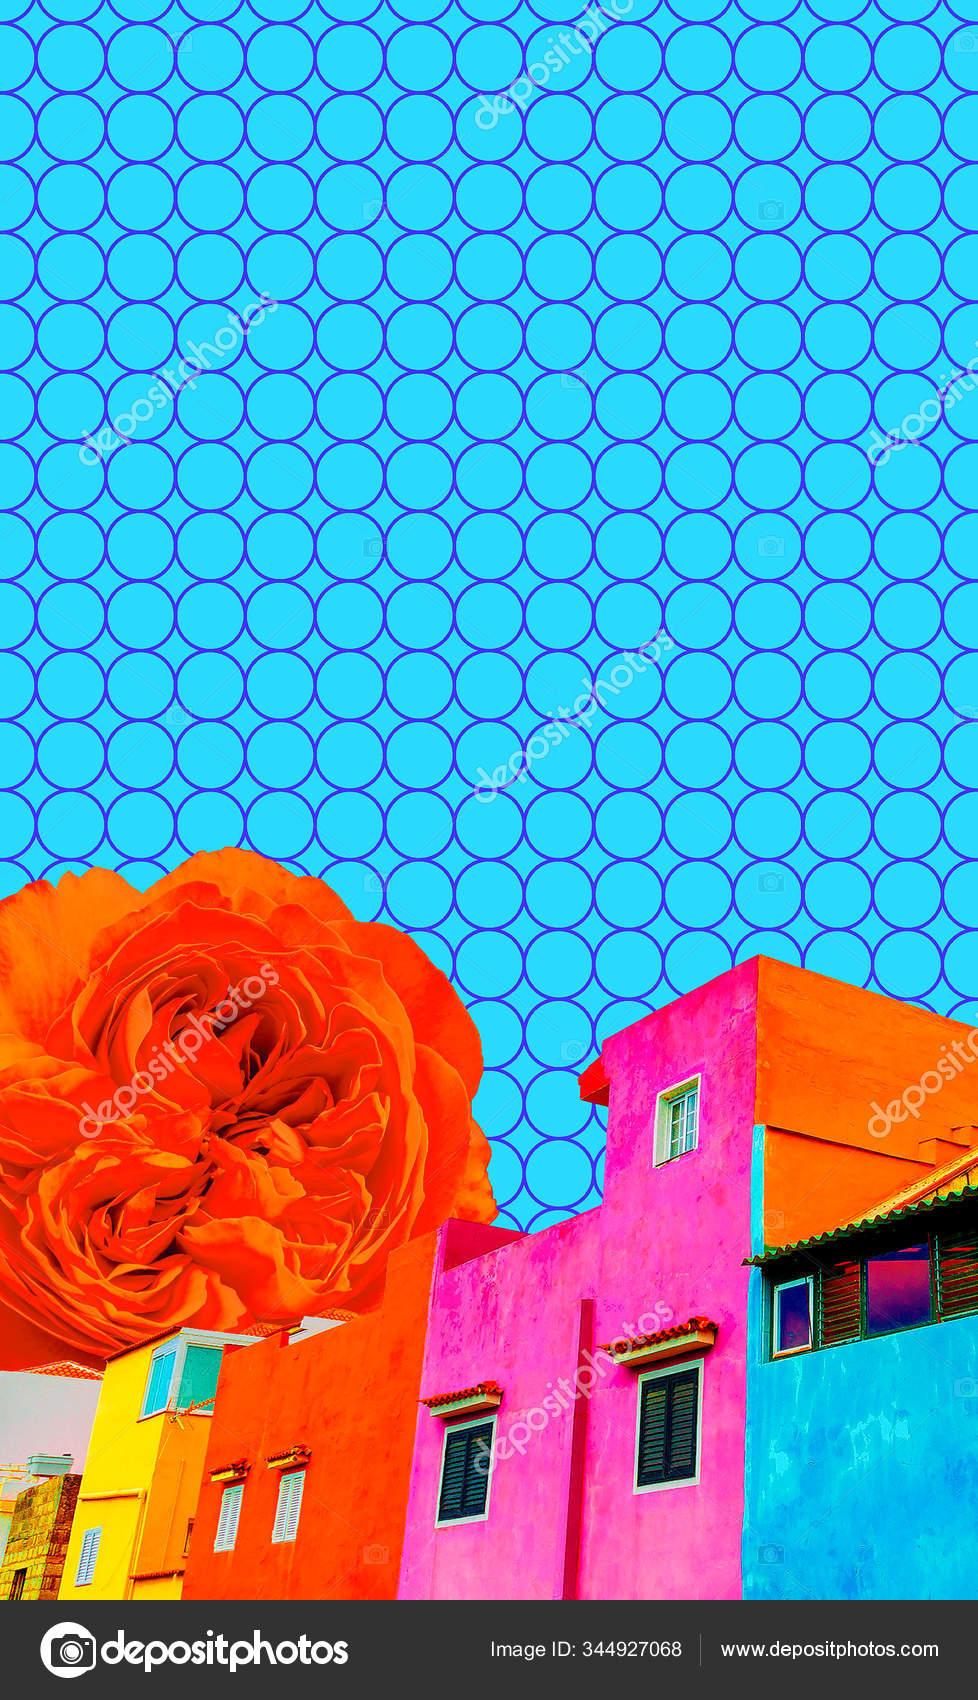 Aesthetic Collage Wallpaper Colorfull Arhitecture And Geometry